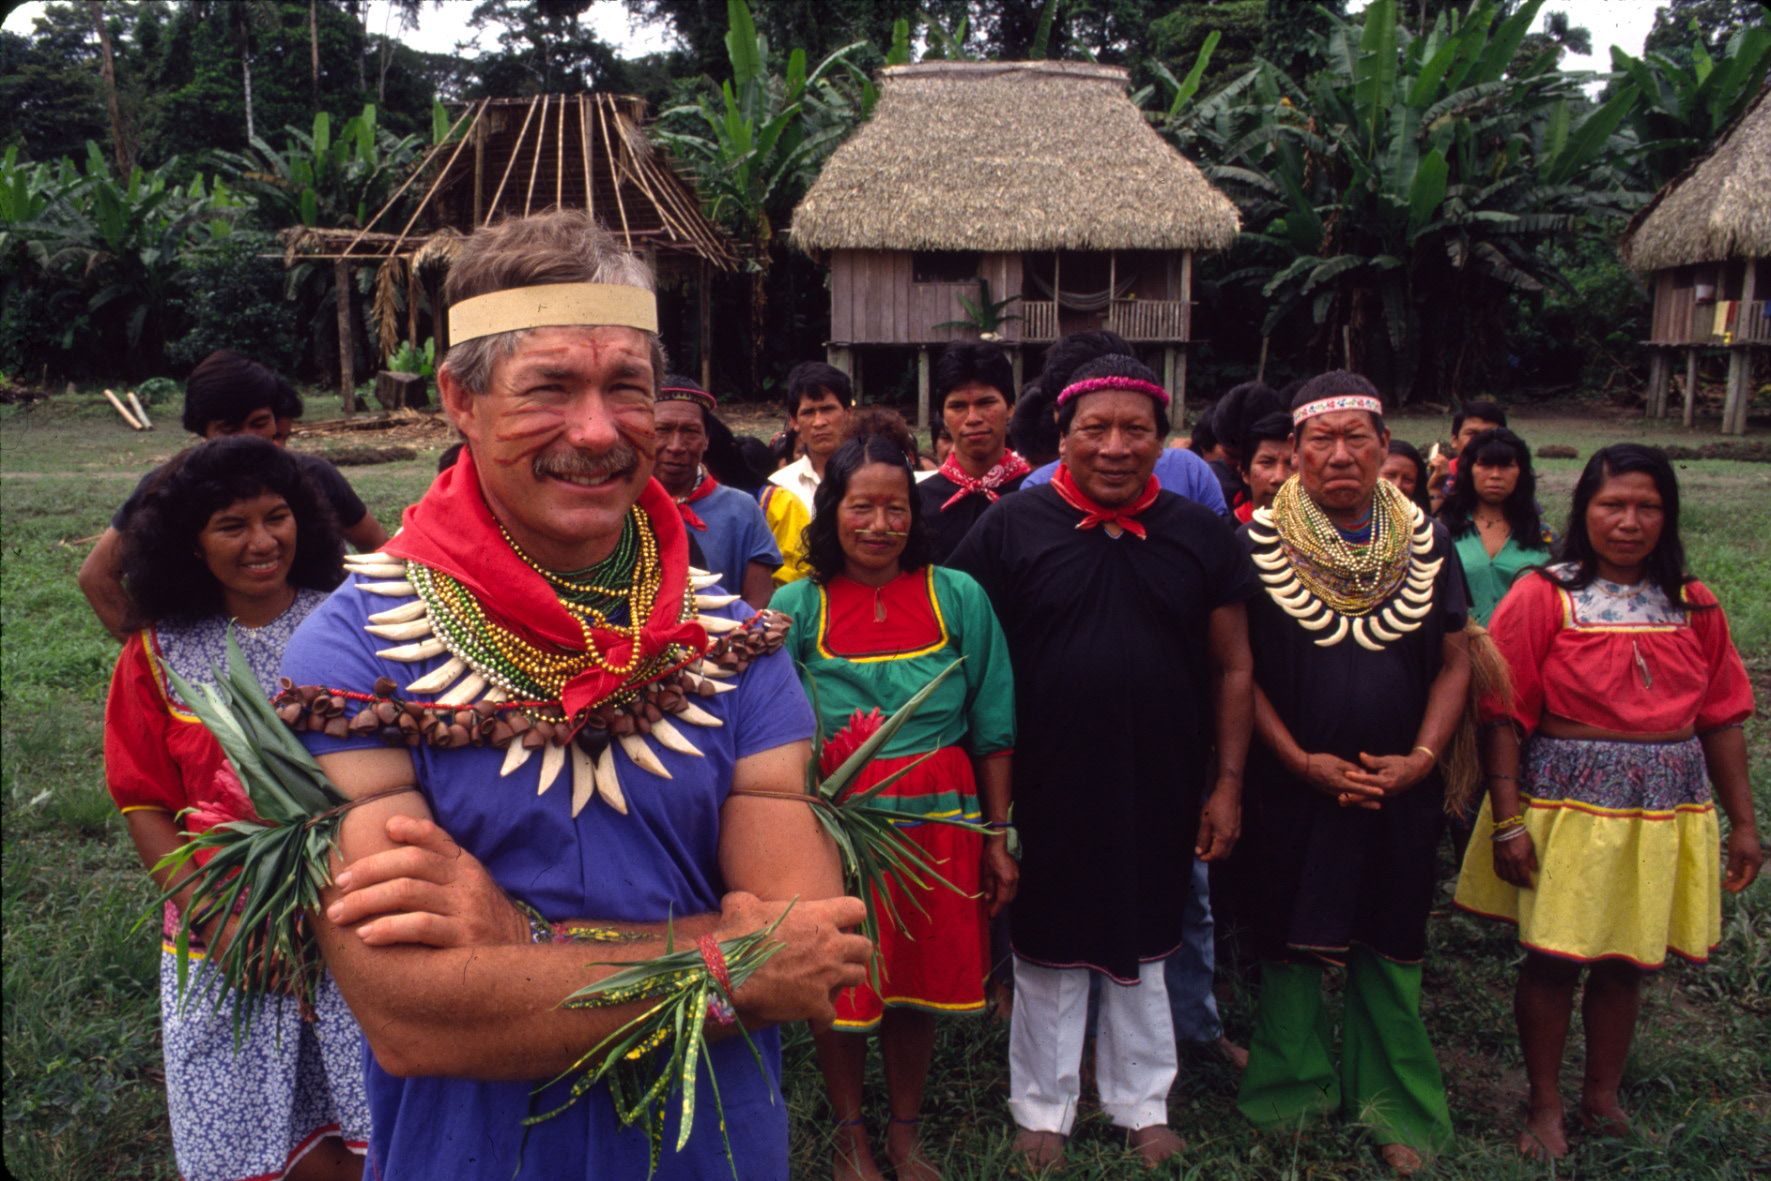 Randy with members of the Cofan community of Zábalo